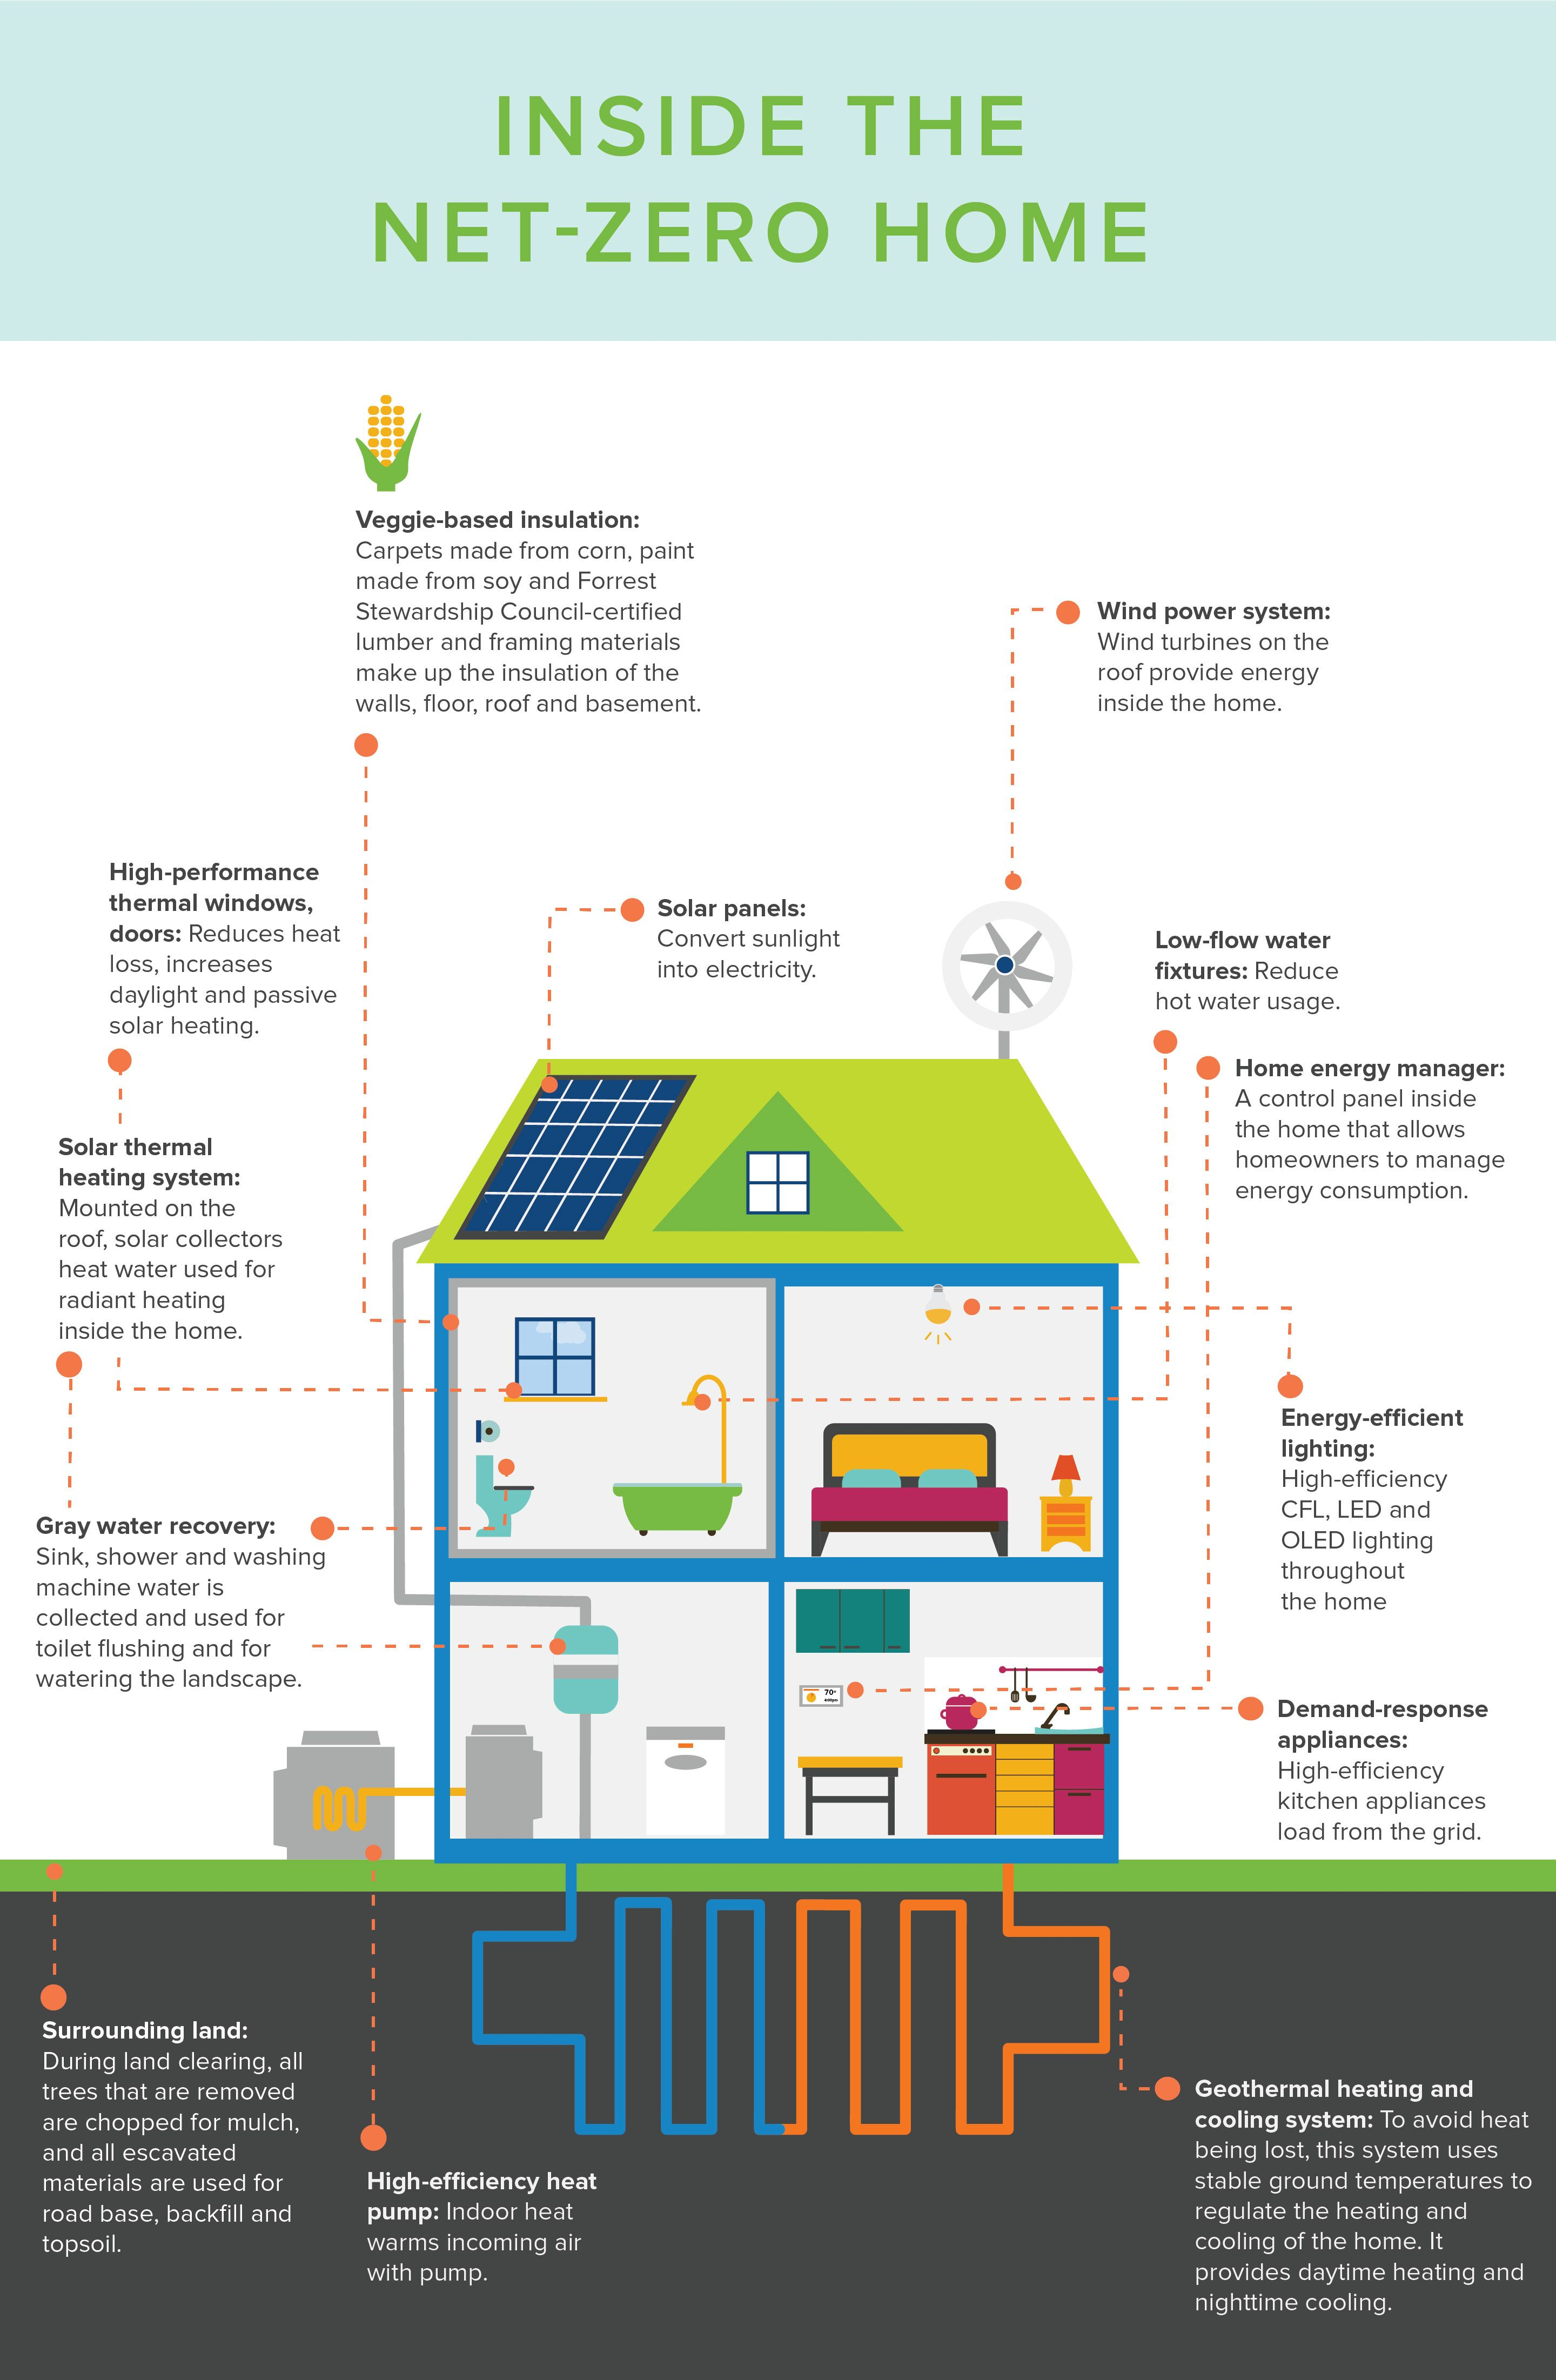 Infographic What netzero homes of the future will look